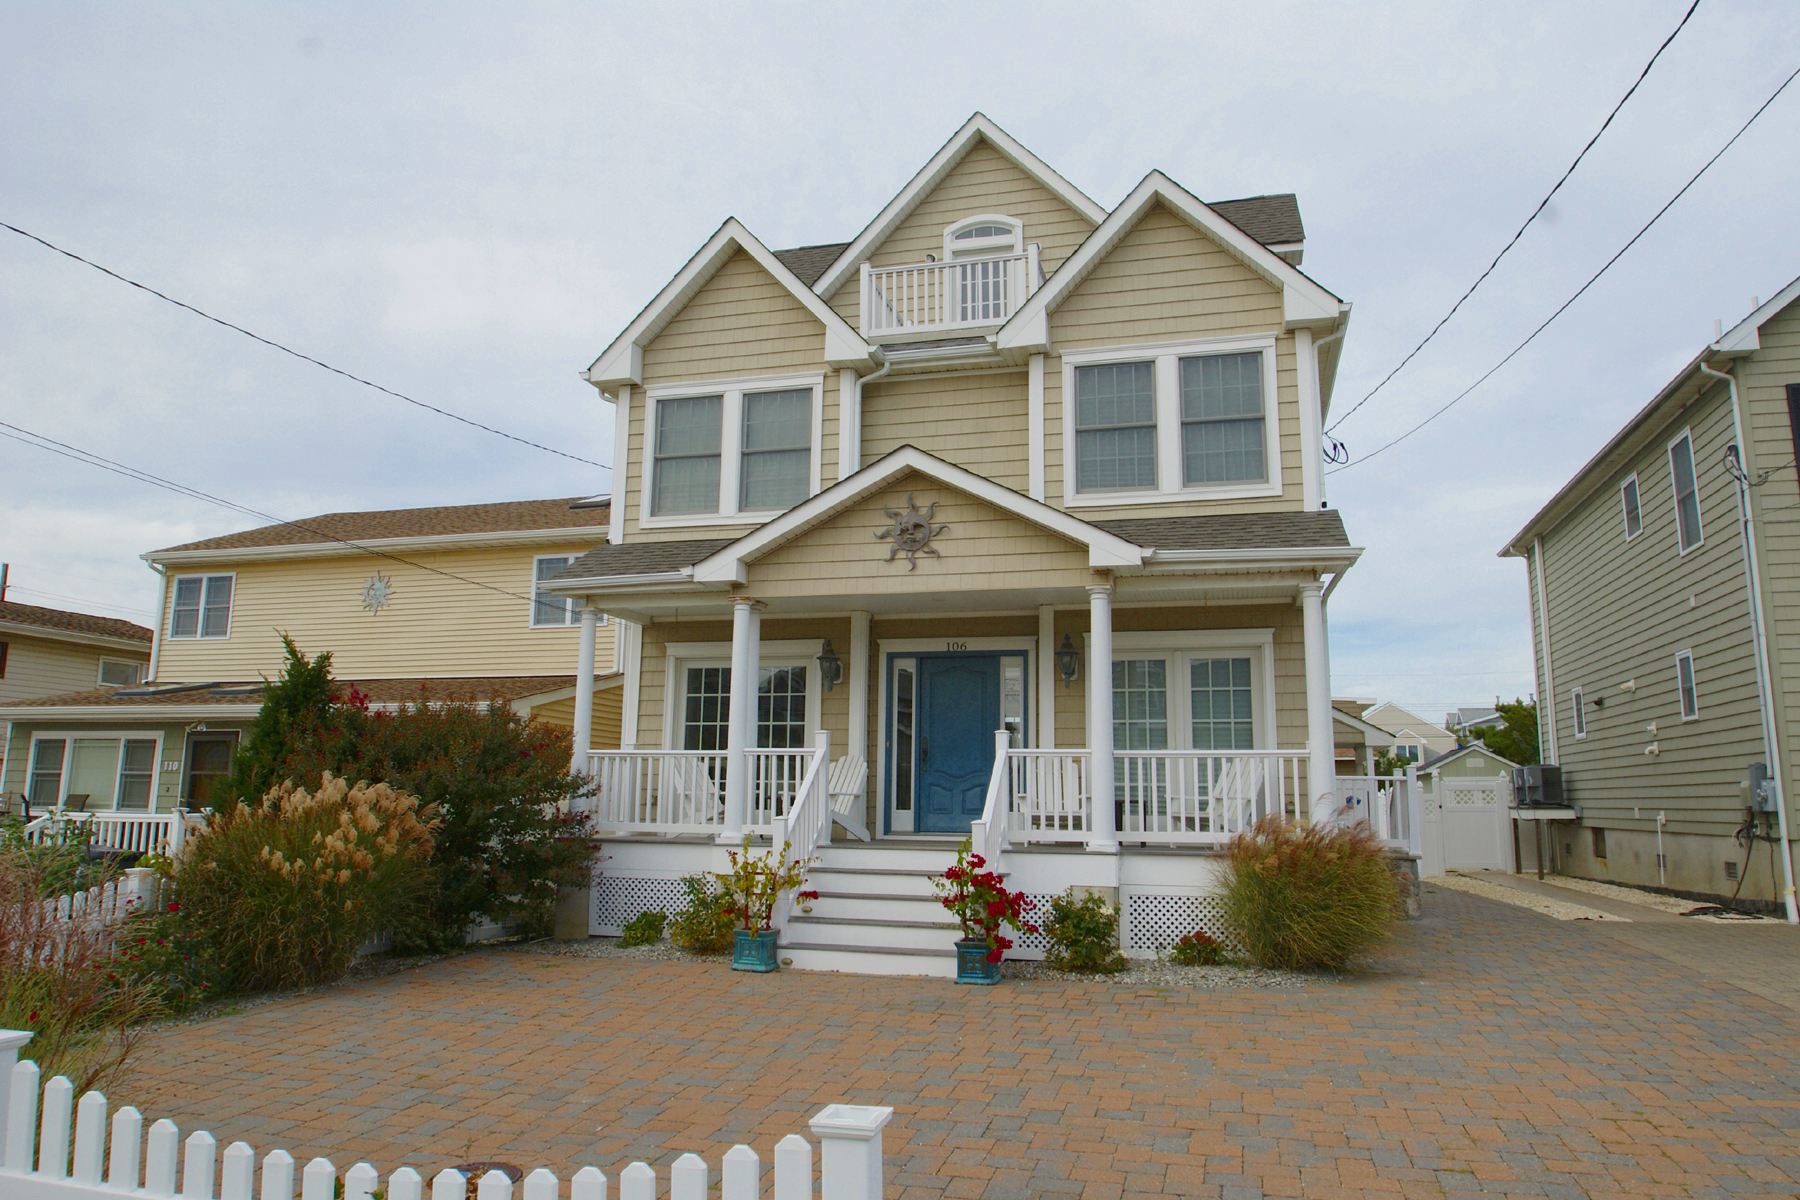 Single Family Home for Sale at Beautiful Shore Colonial Located Just 1 1/2 Blocks To Beach 106 3rd Avenue, Normandy Beach, New Jersey 08739 United States